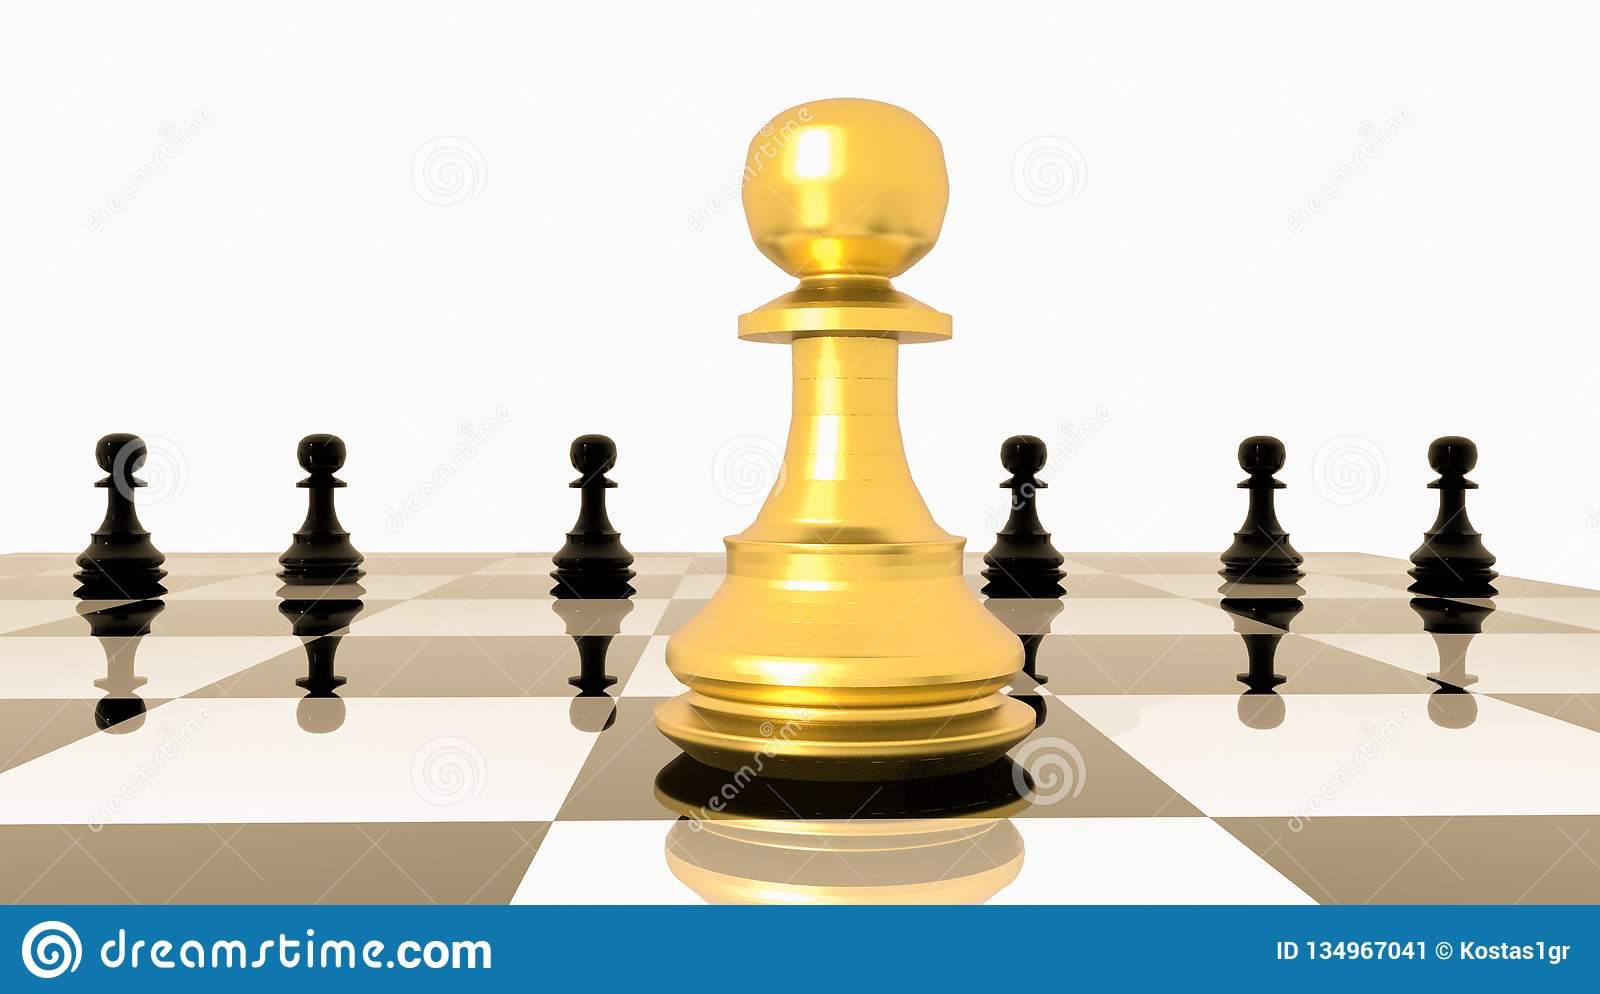 Pawn chess golden soldier one outstanding competitive advantage management - 3d rendering